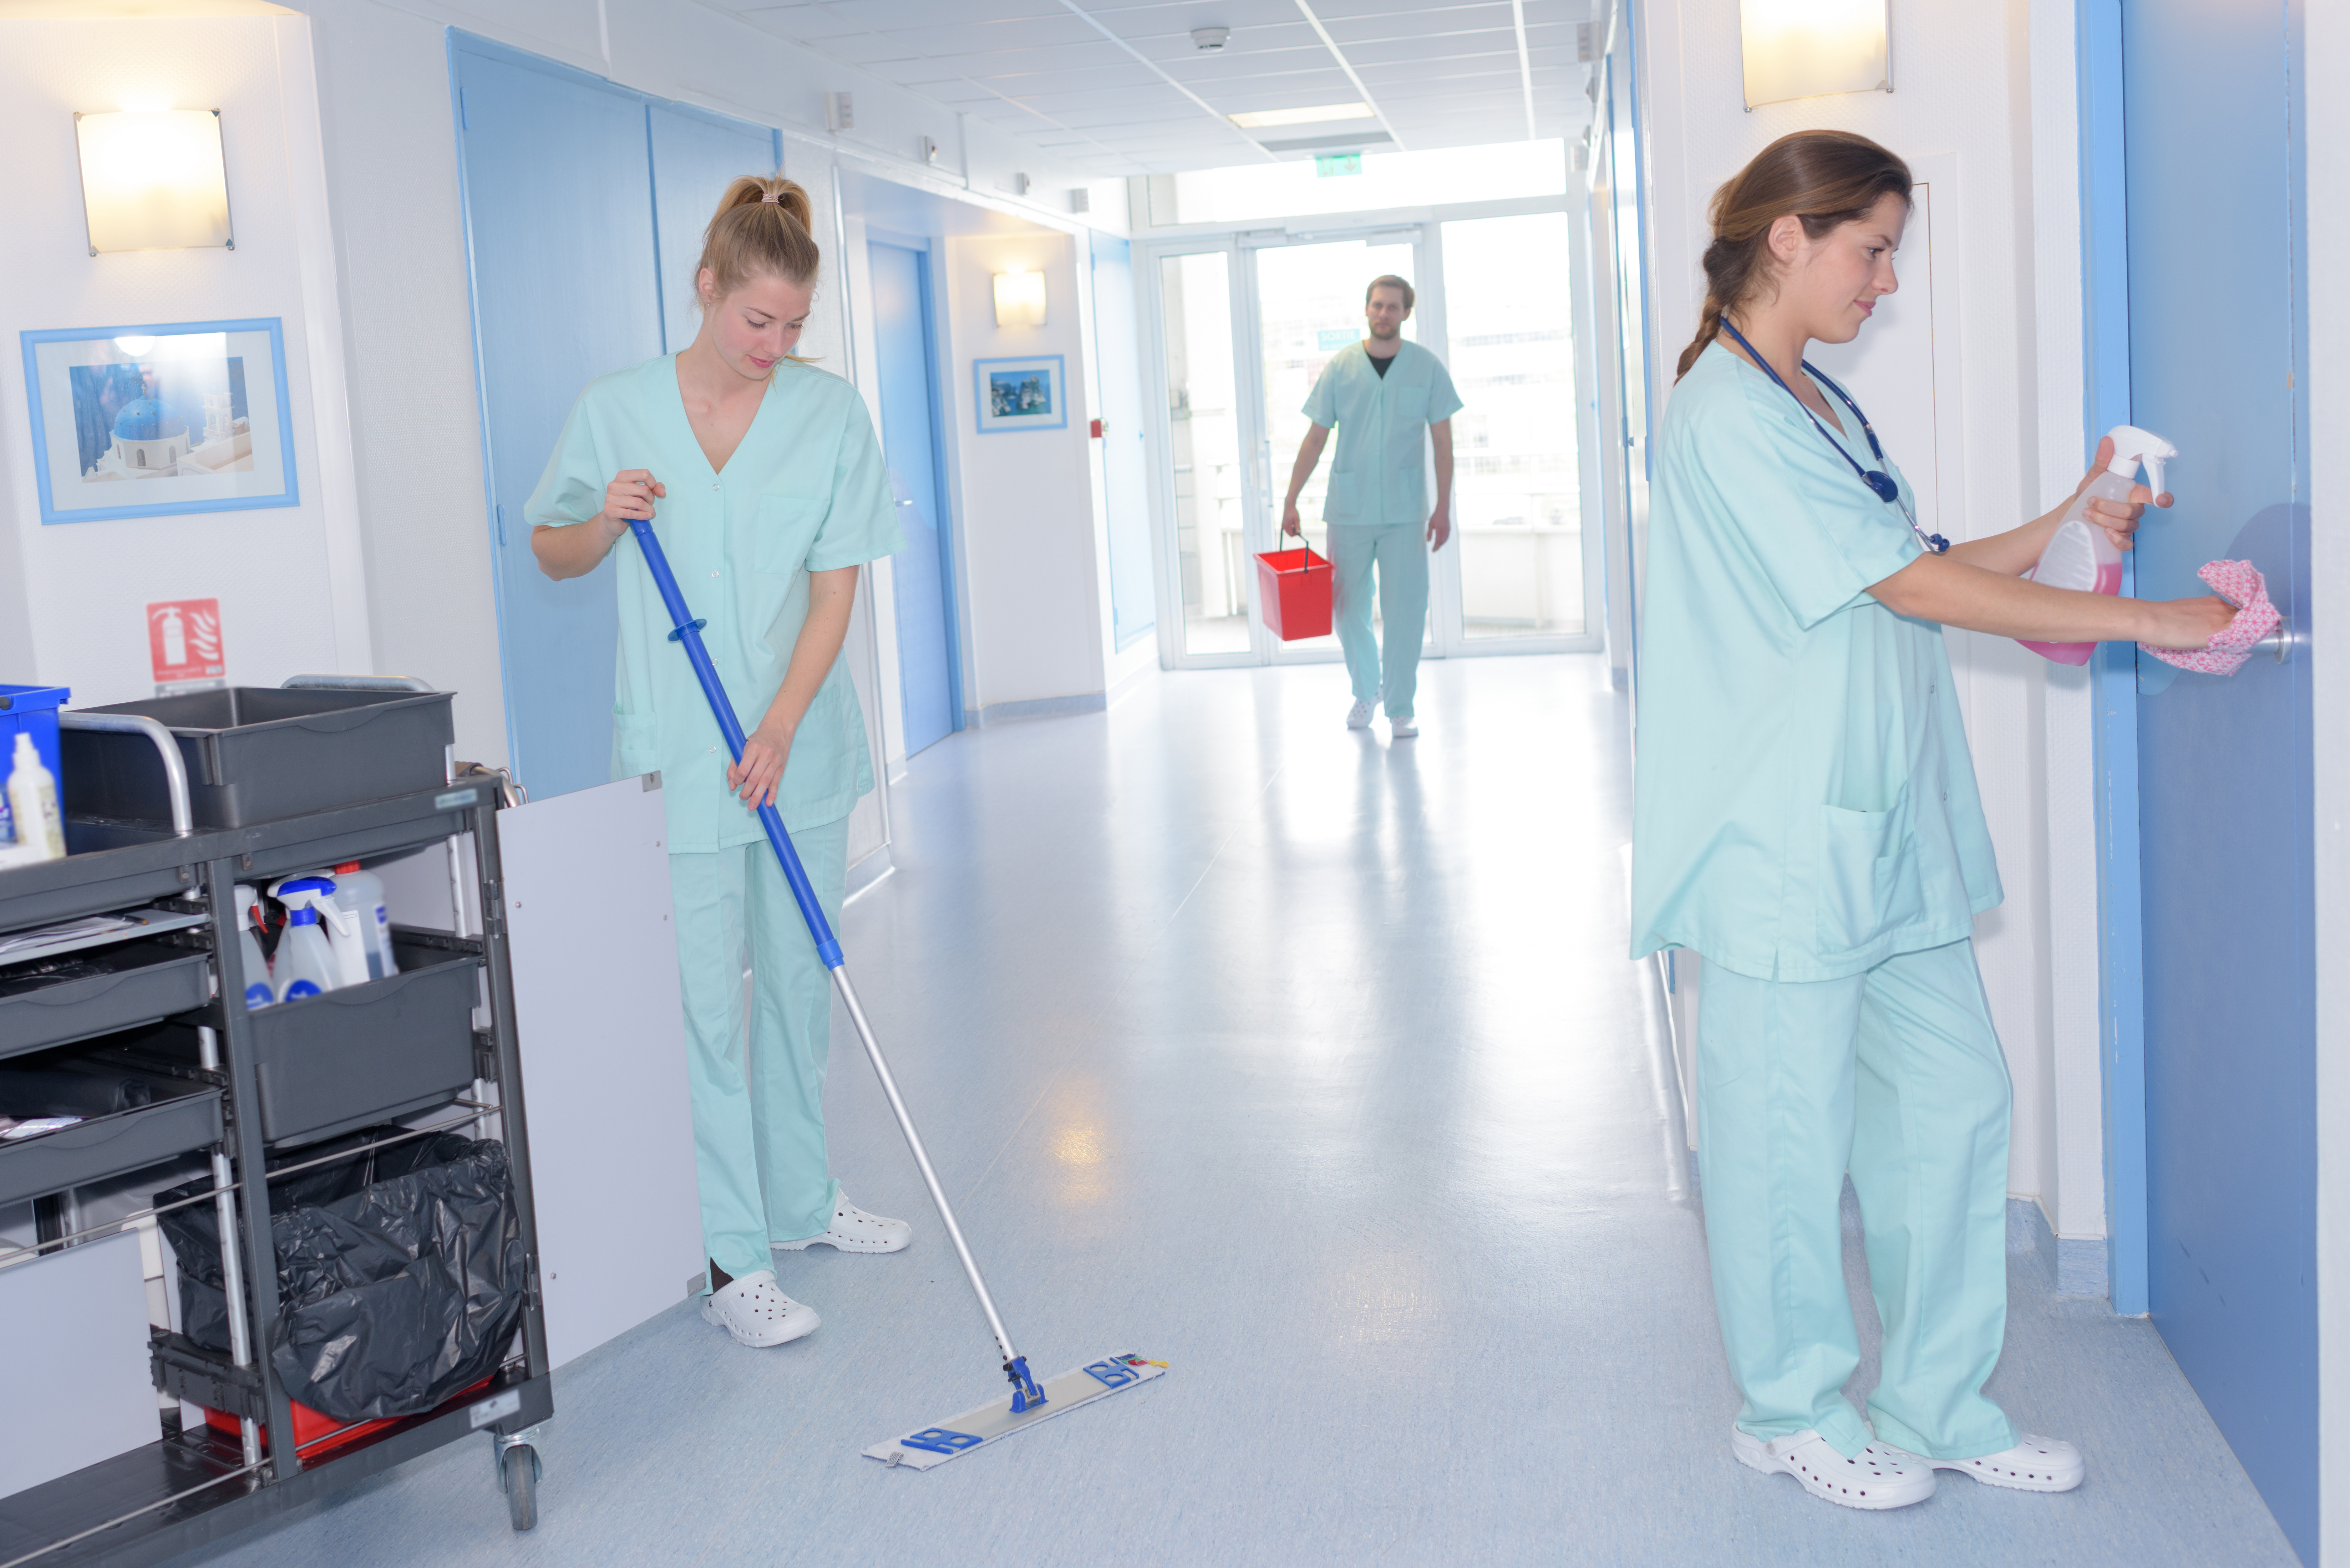 Use This Technology to Scale Cleaning Performance Management in Your Healthcare Facility